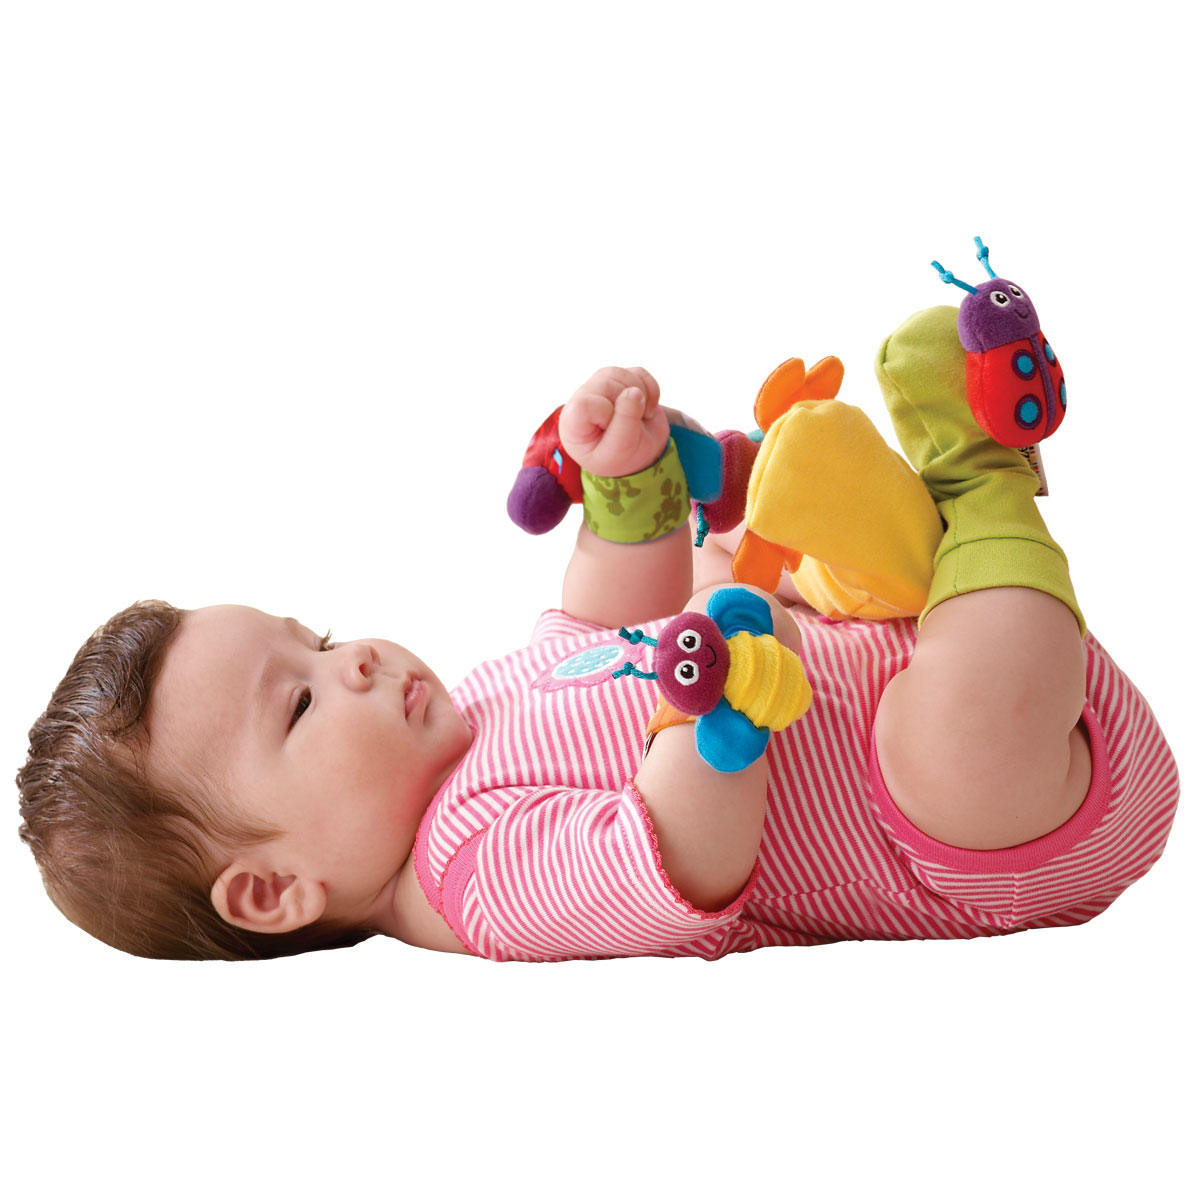 Footfinders And Wrist Rattles Set Lamaze Toys For Babies